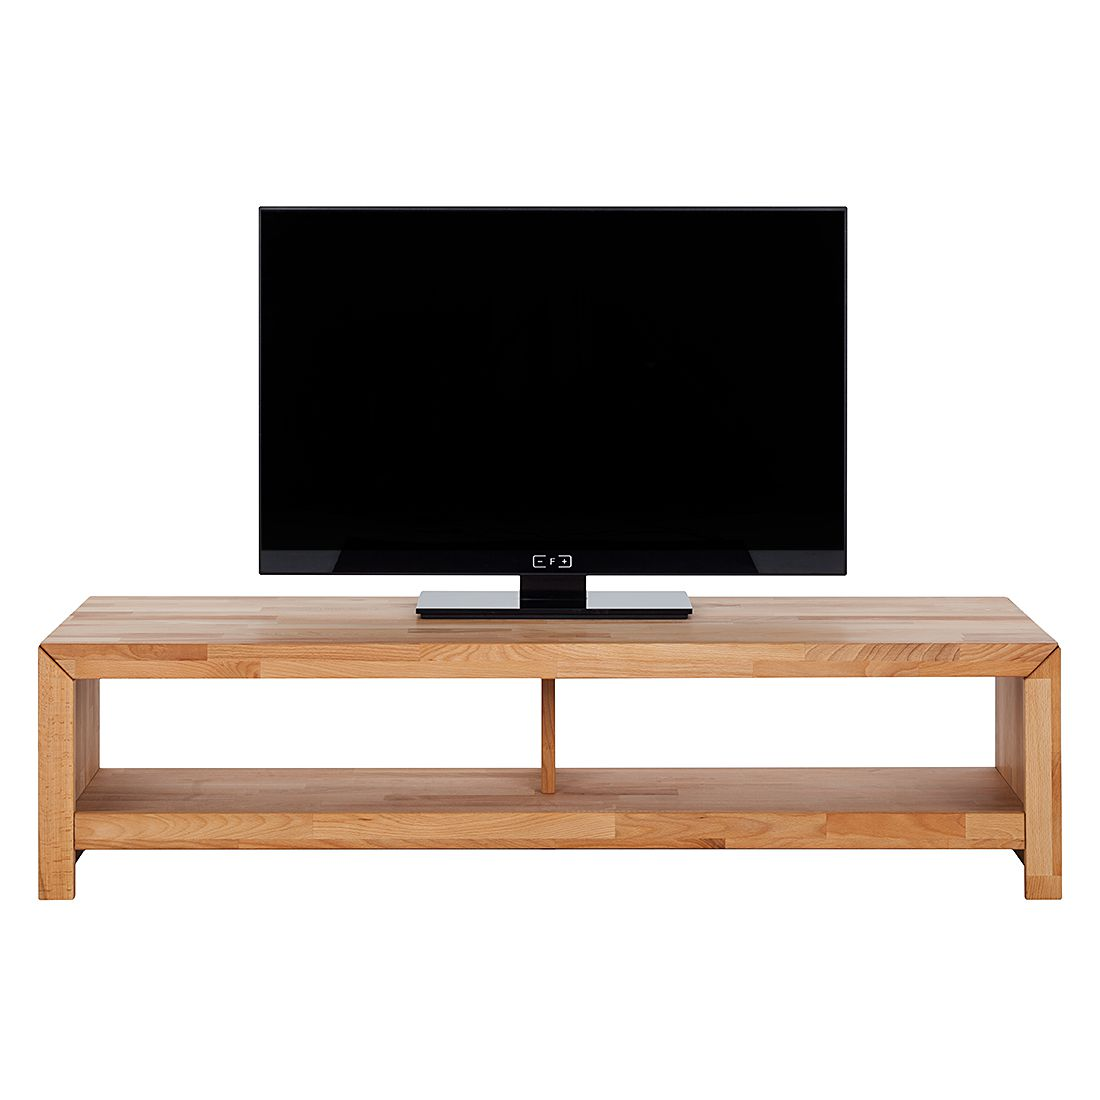 ars natura lowboard kireawood ii kernbuche tv board schrank tisch m bel regal ebay. Black Bedroom Furniture Sets. Home Design Ideas